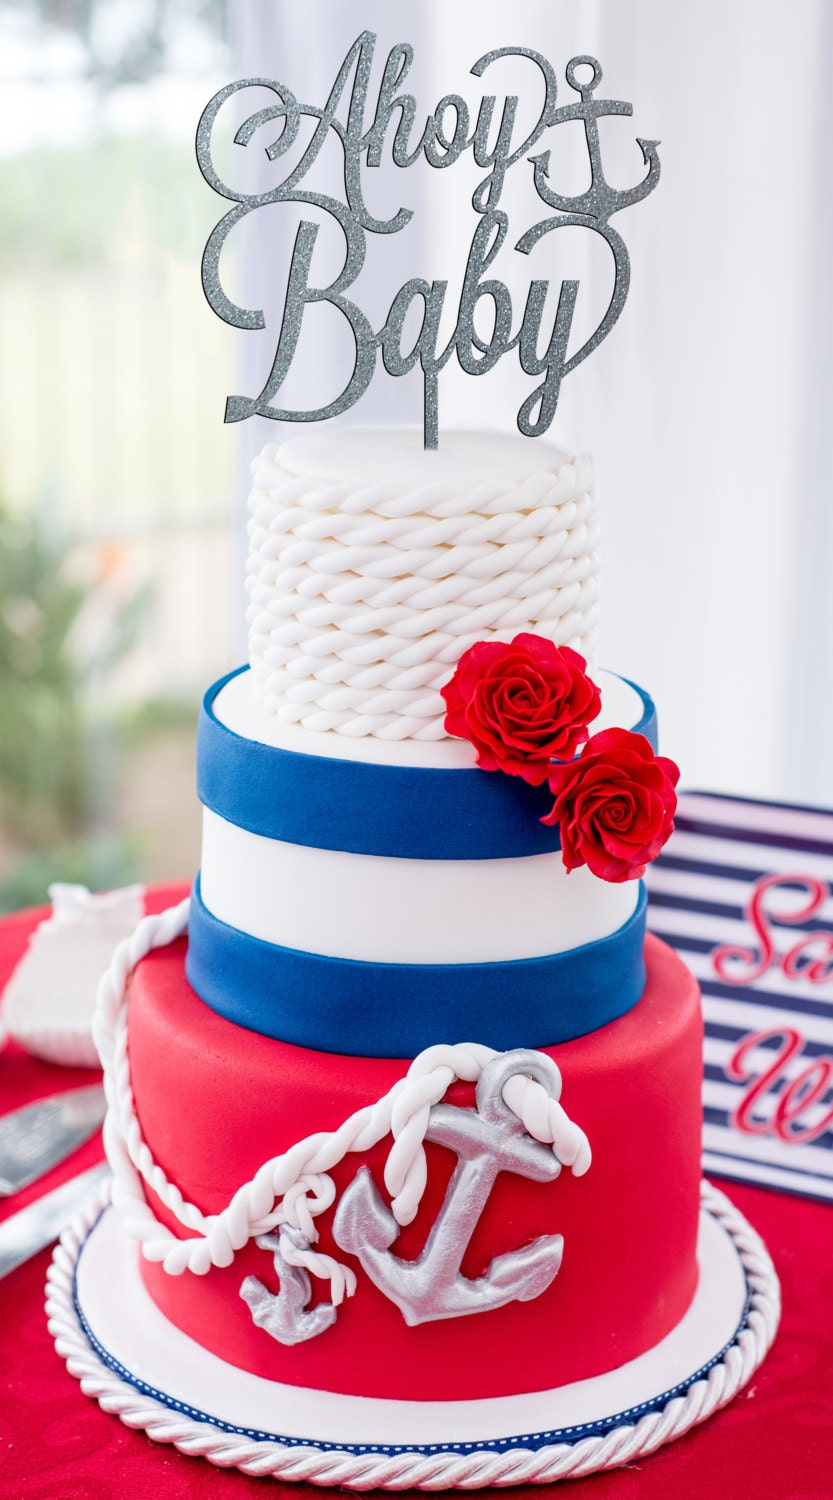 Nautical Baby Shower, Ahoy Baby Cake Topper, Baby Shower Cake, Baby Shower  Decor, Nautical Baby Shower Decorations, Gender Reveal Cake